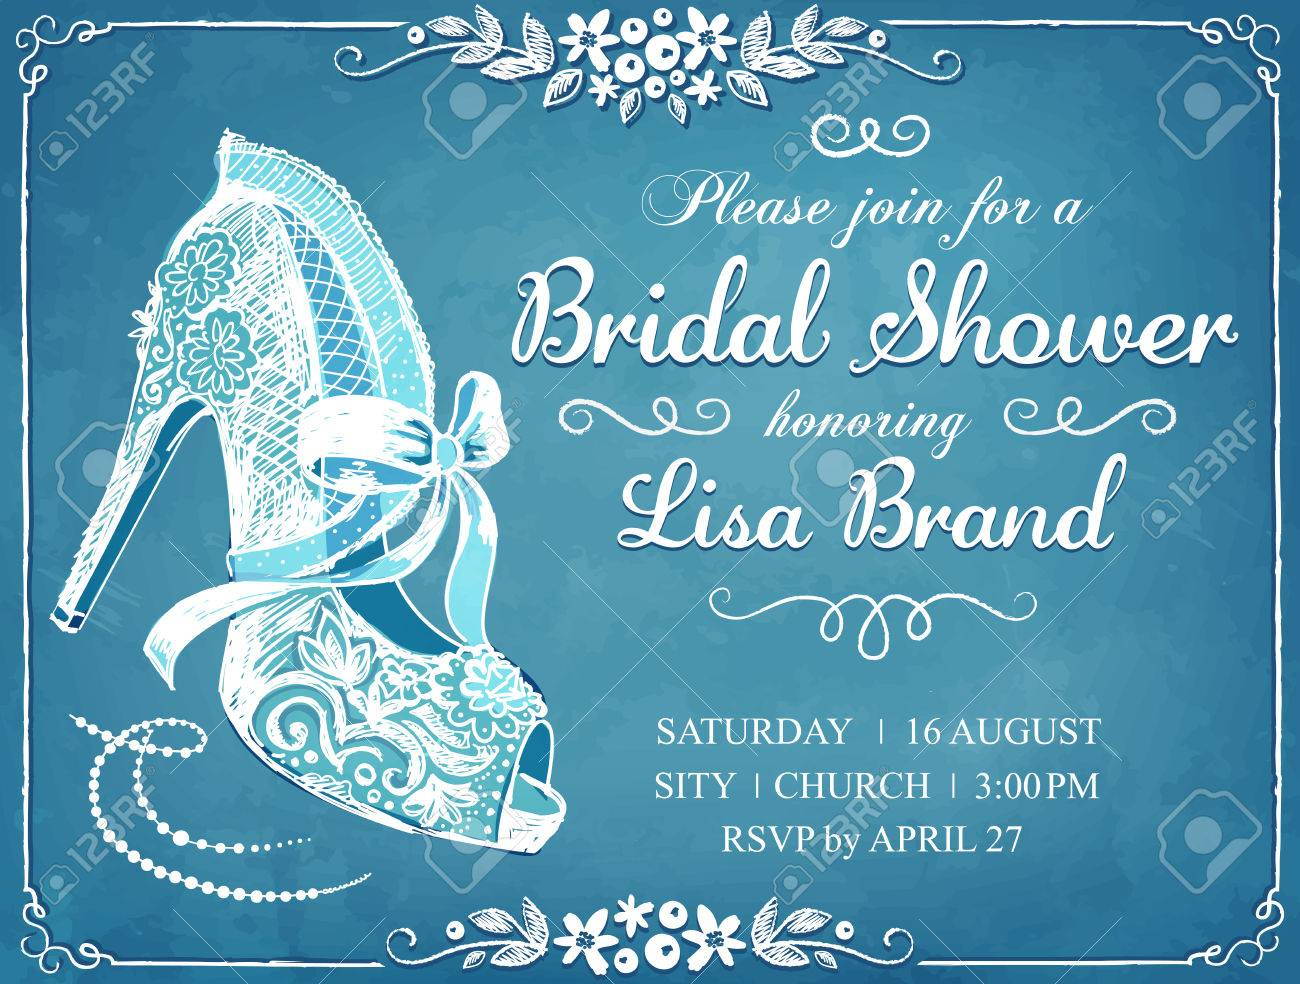 Bridal Shower Invitation Card With Beautiful Lace Bride S Shoe